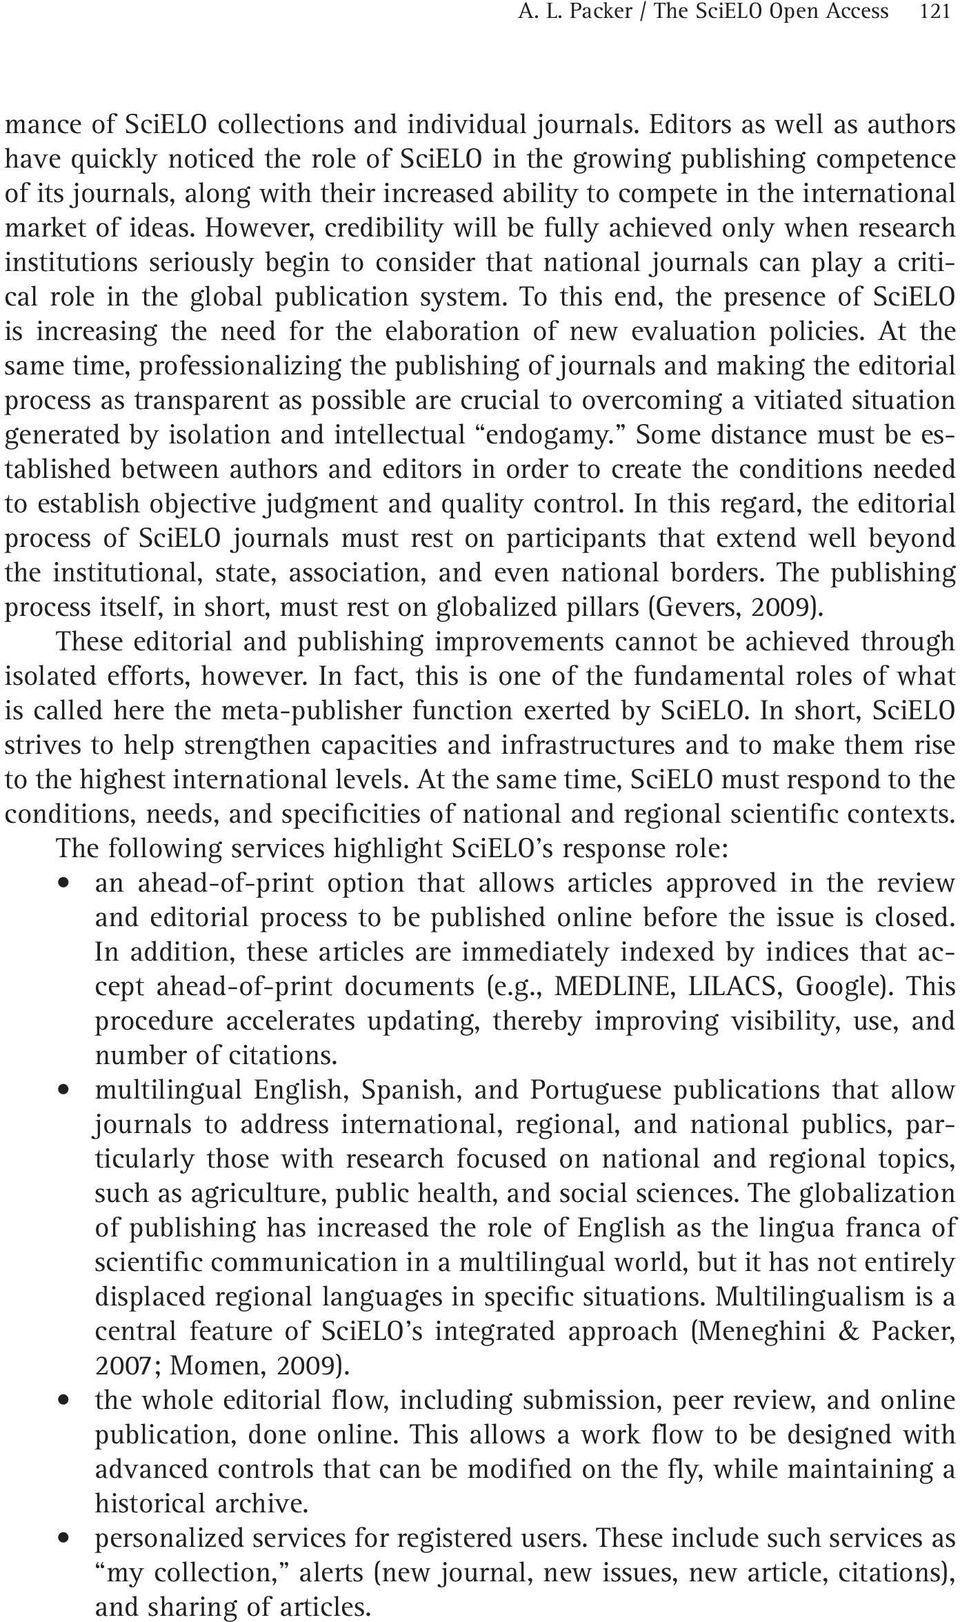 ideas. However, credibility will be fully achieved only when research institutions seriously begin to consider that national journals can play a critical role in the global publication system.